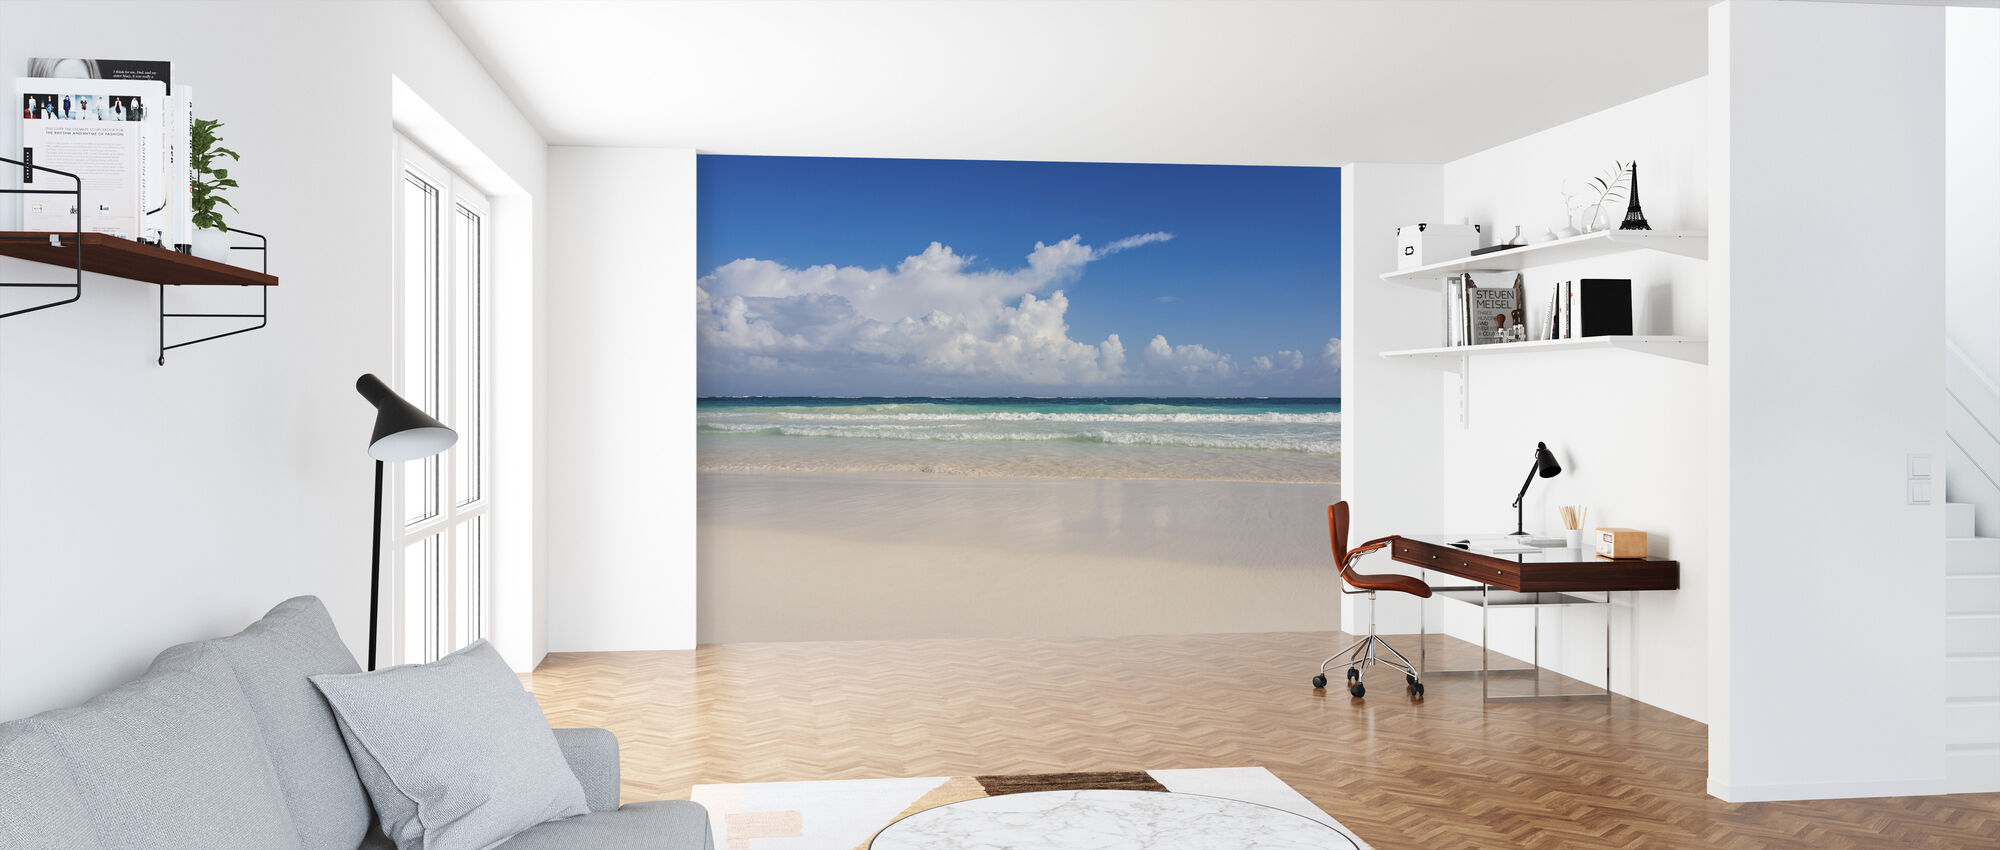 Caribbean Ocean - Wallpaper - Office